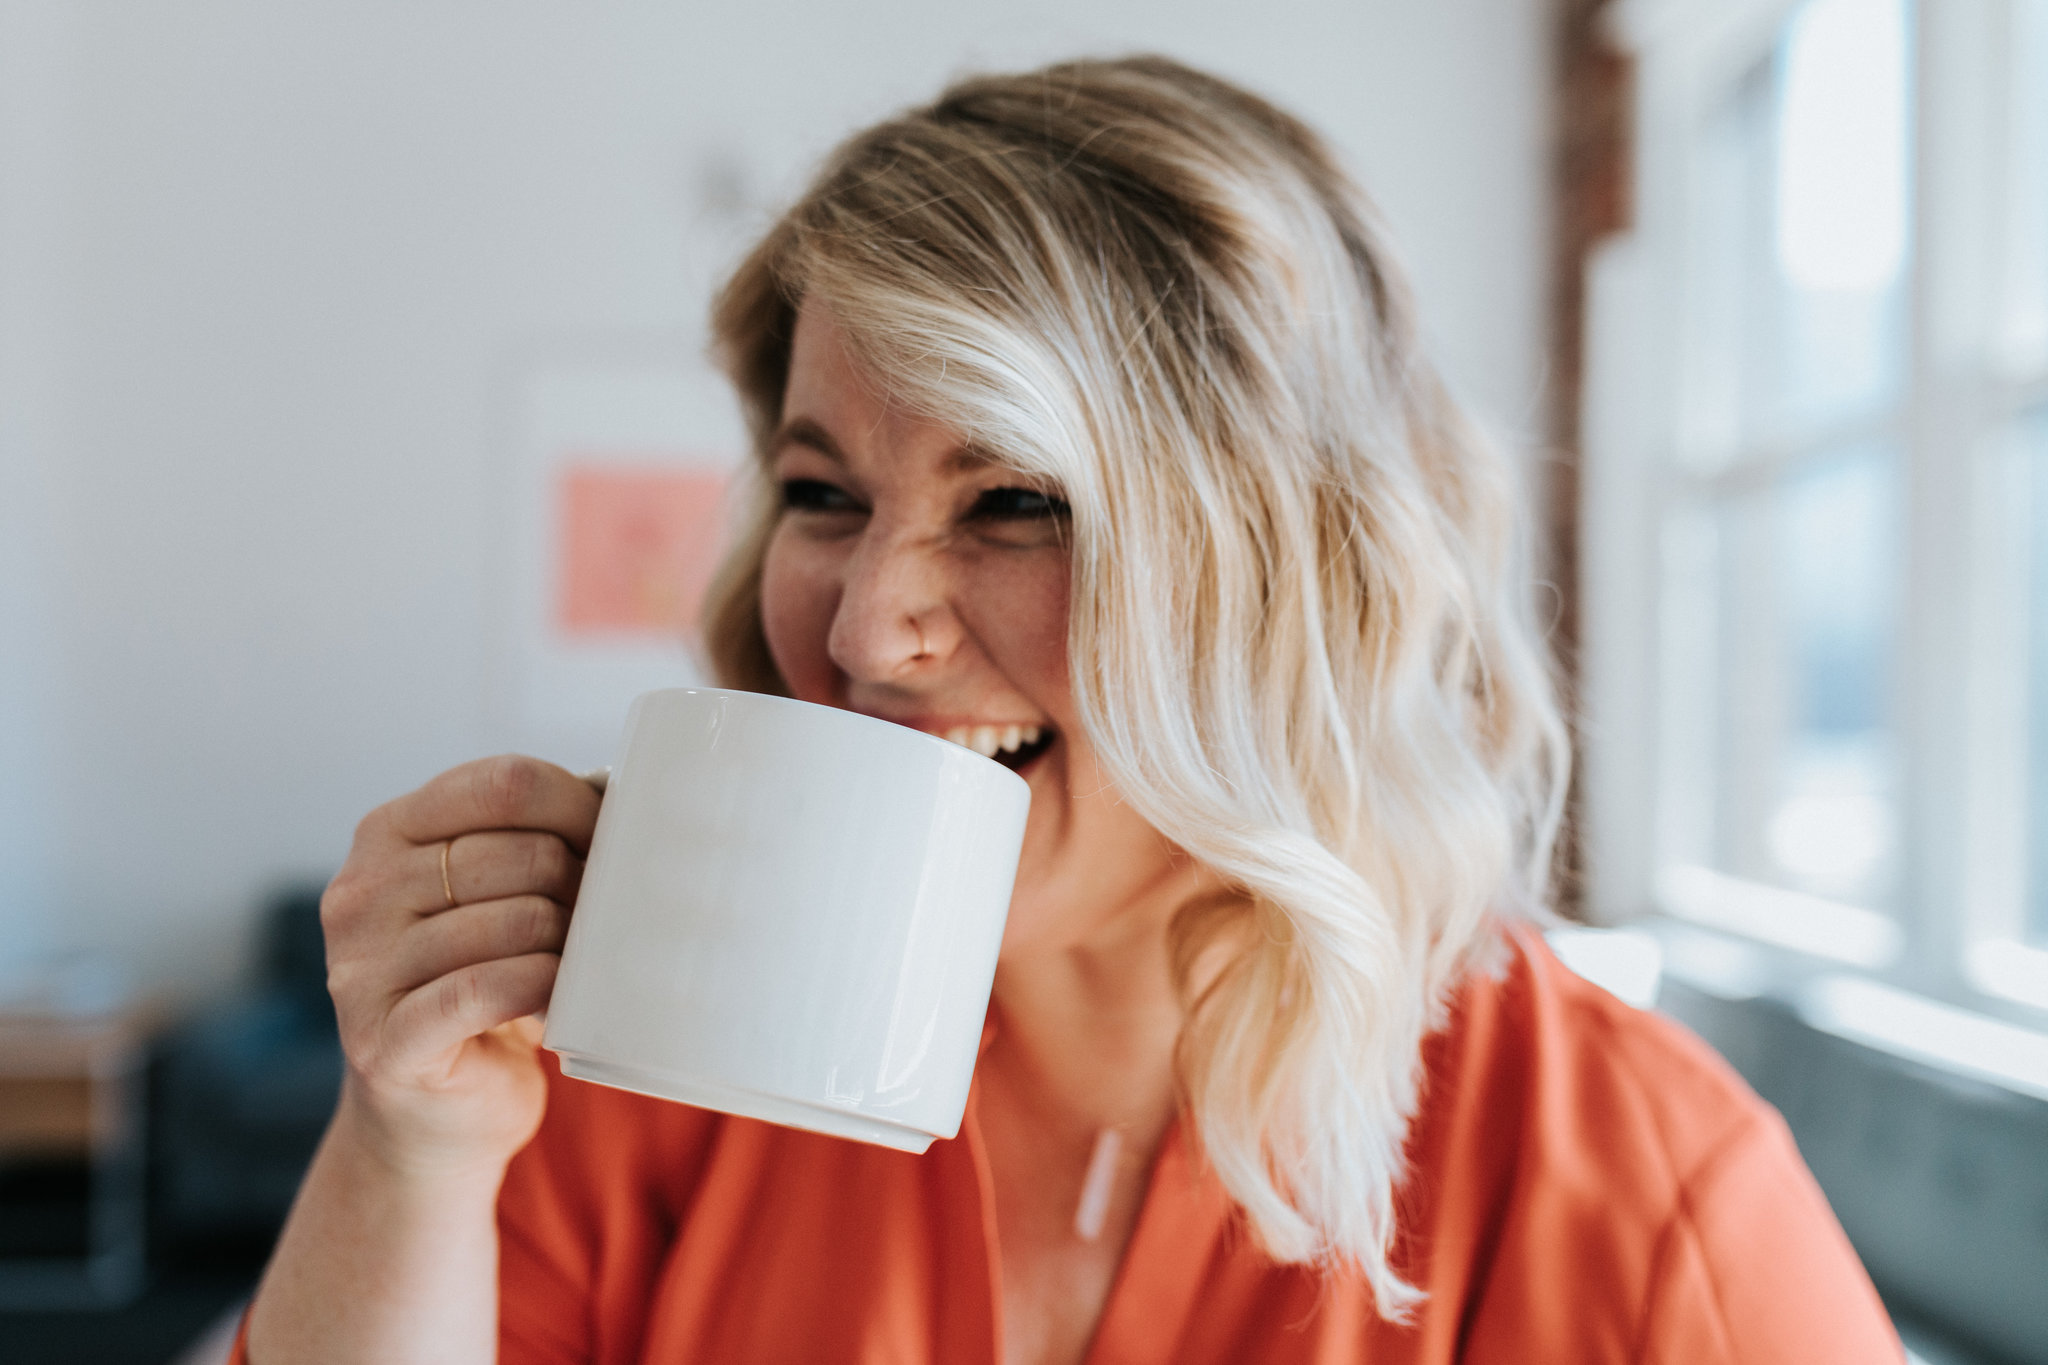 Also known for laughing maniacally while drinking coffee out of a large mug.